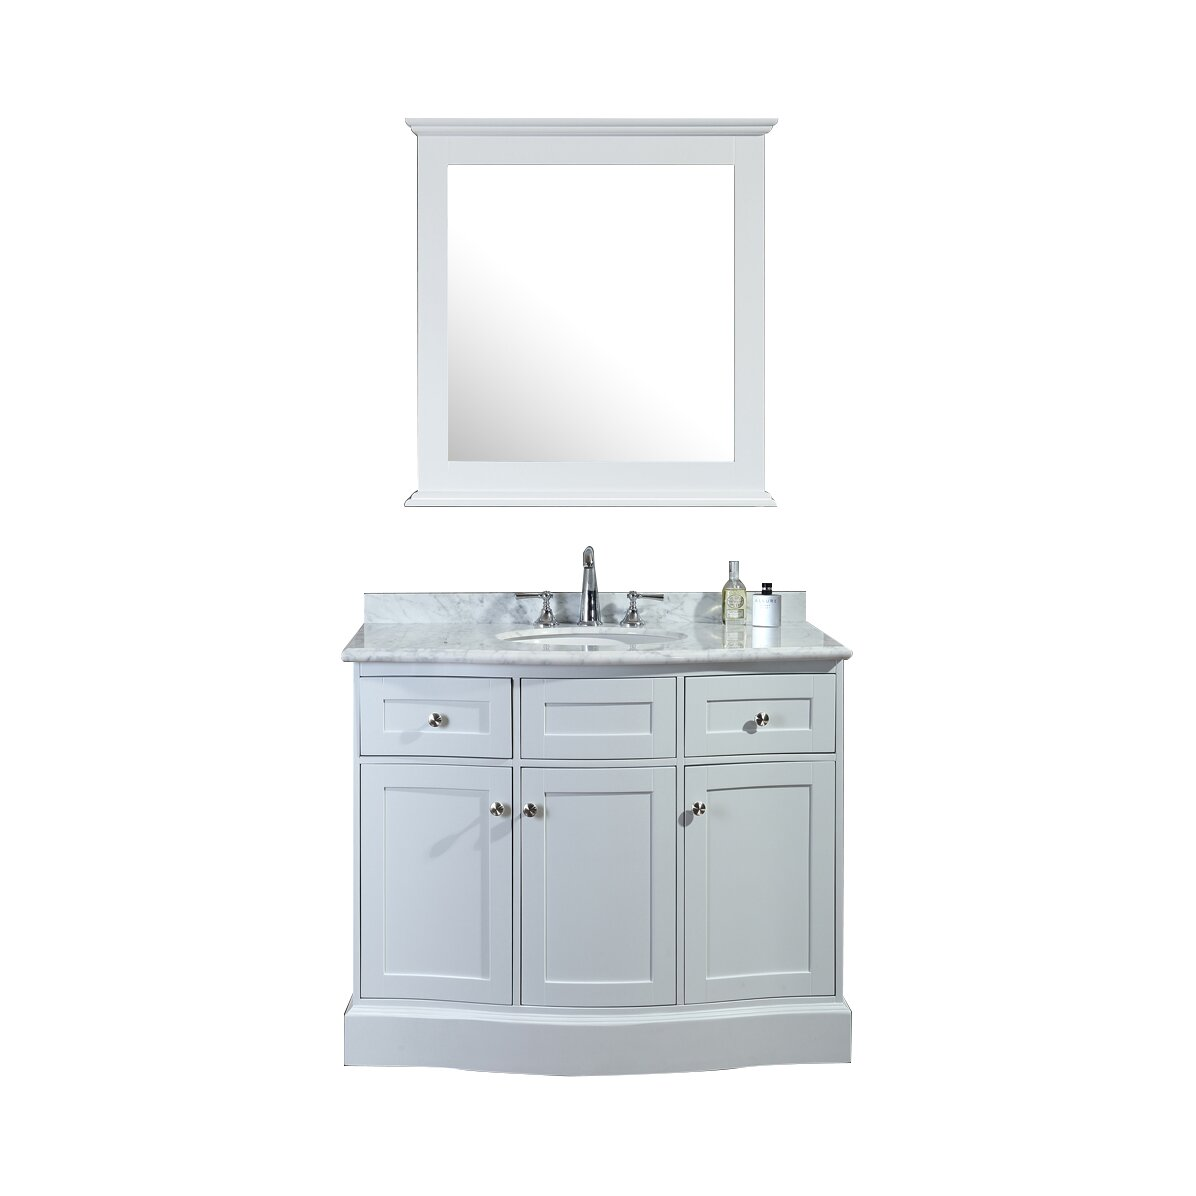 Ariel bath montauk 42 single bathroom vanity set with for Single bathroom vanity